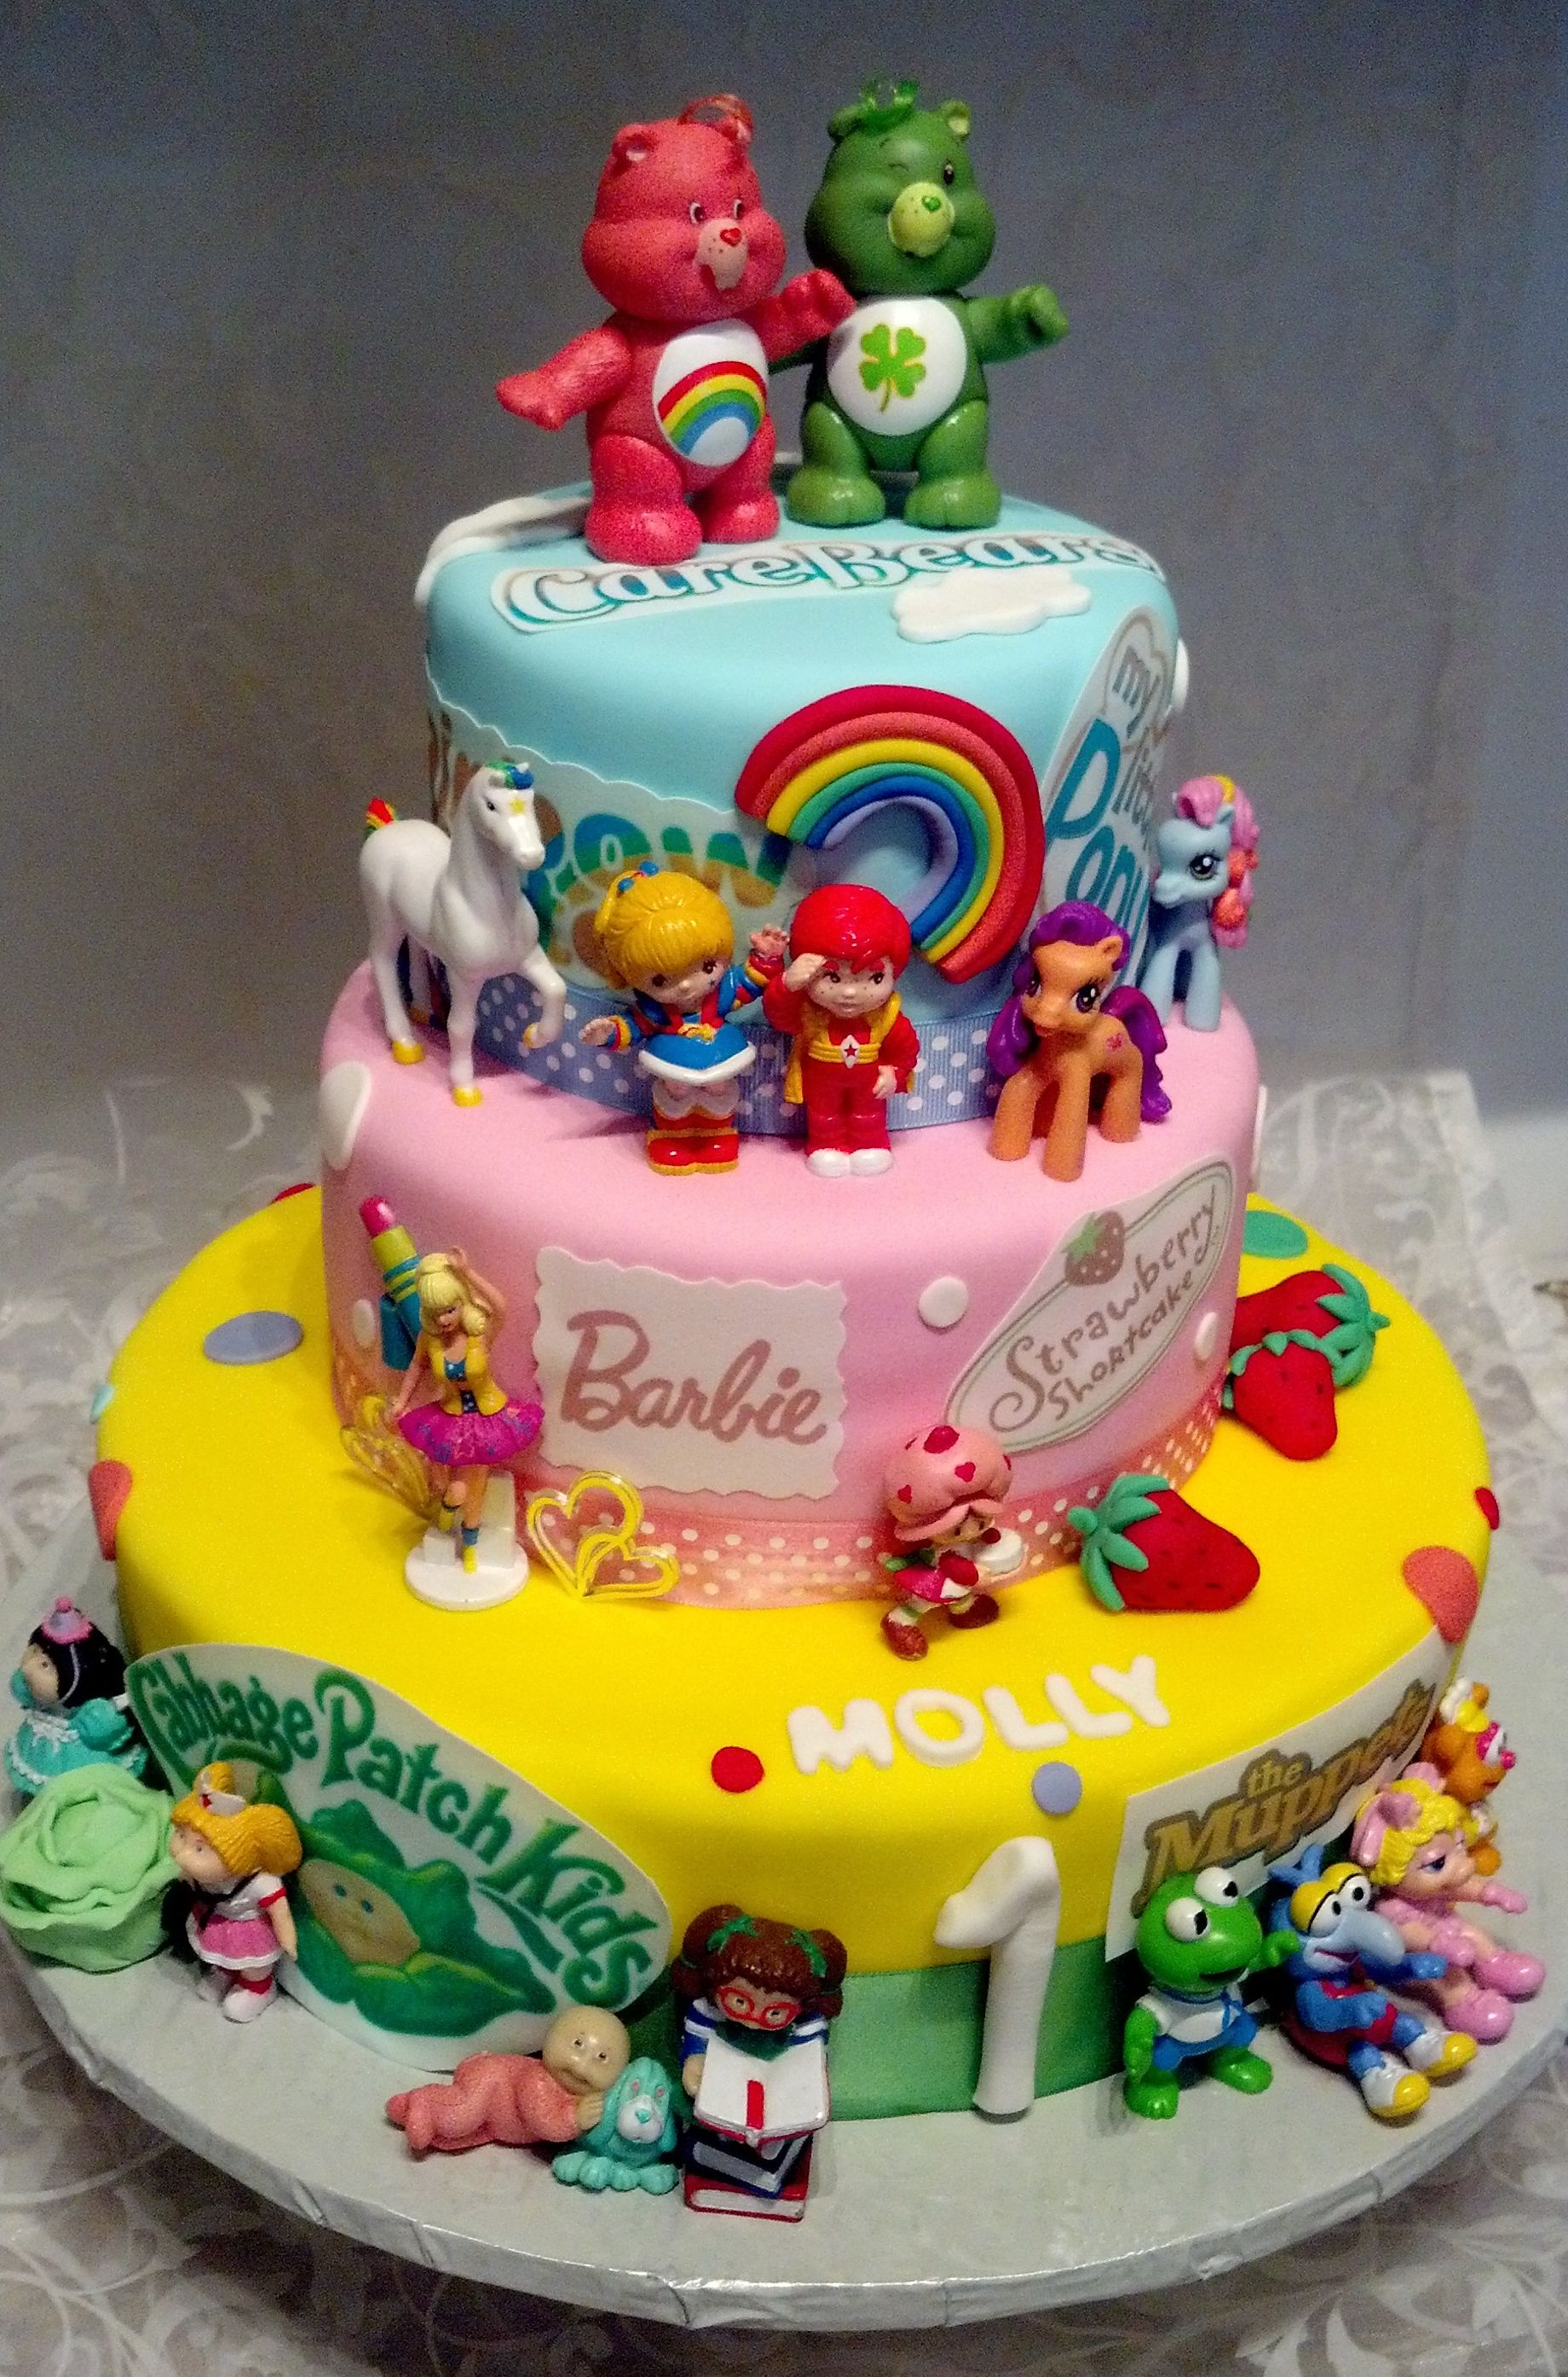 S Themed Character Cakes Yeah This Is All Kinds Of Awesome - Cartoon birthday cake images